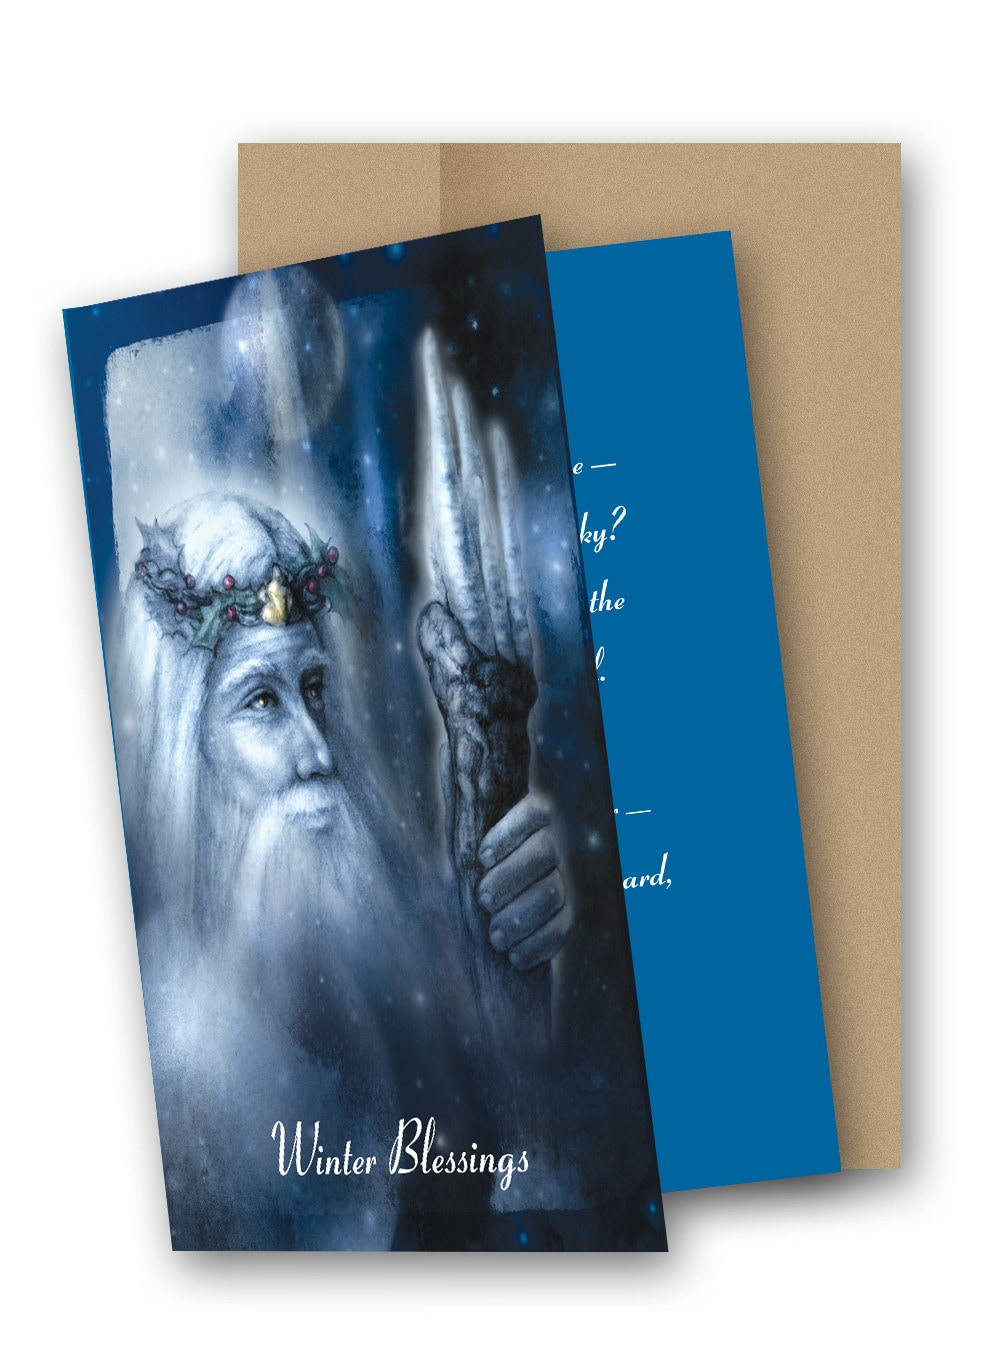 Light of yule 5 x 7 greeting card with envelope m4hsunfo